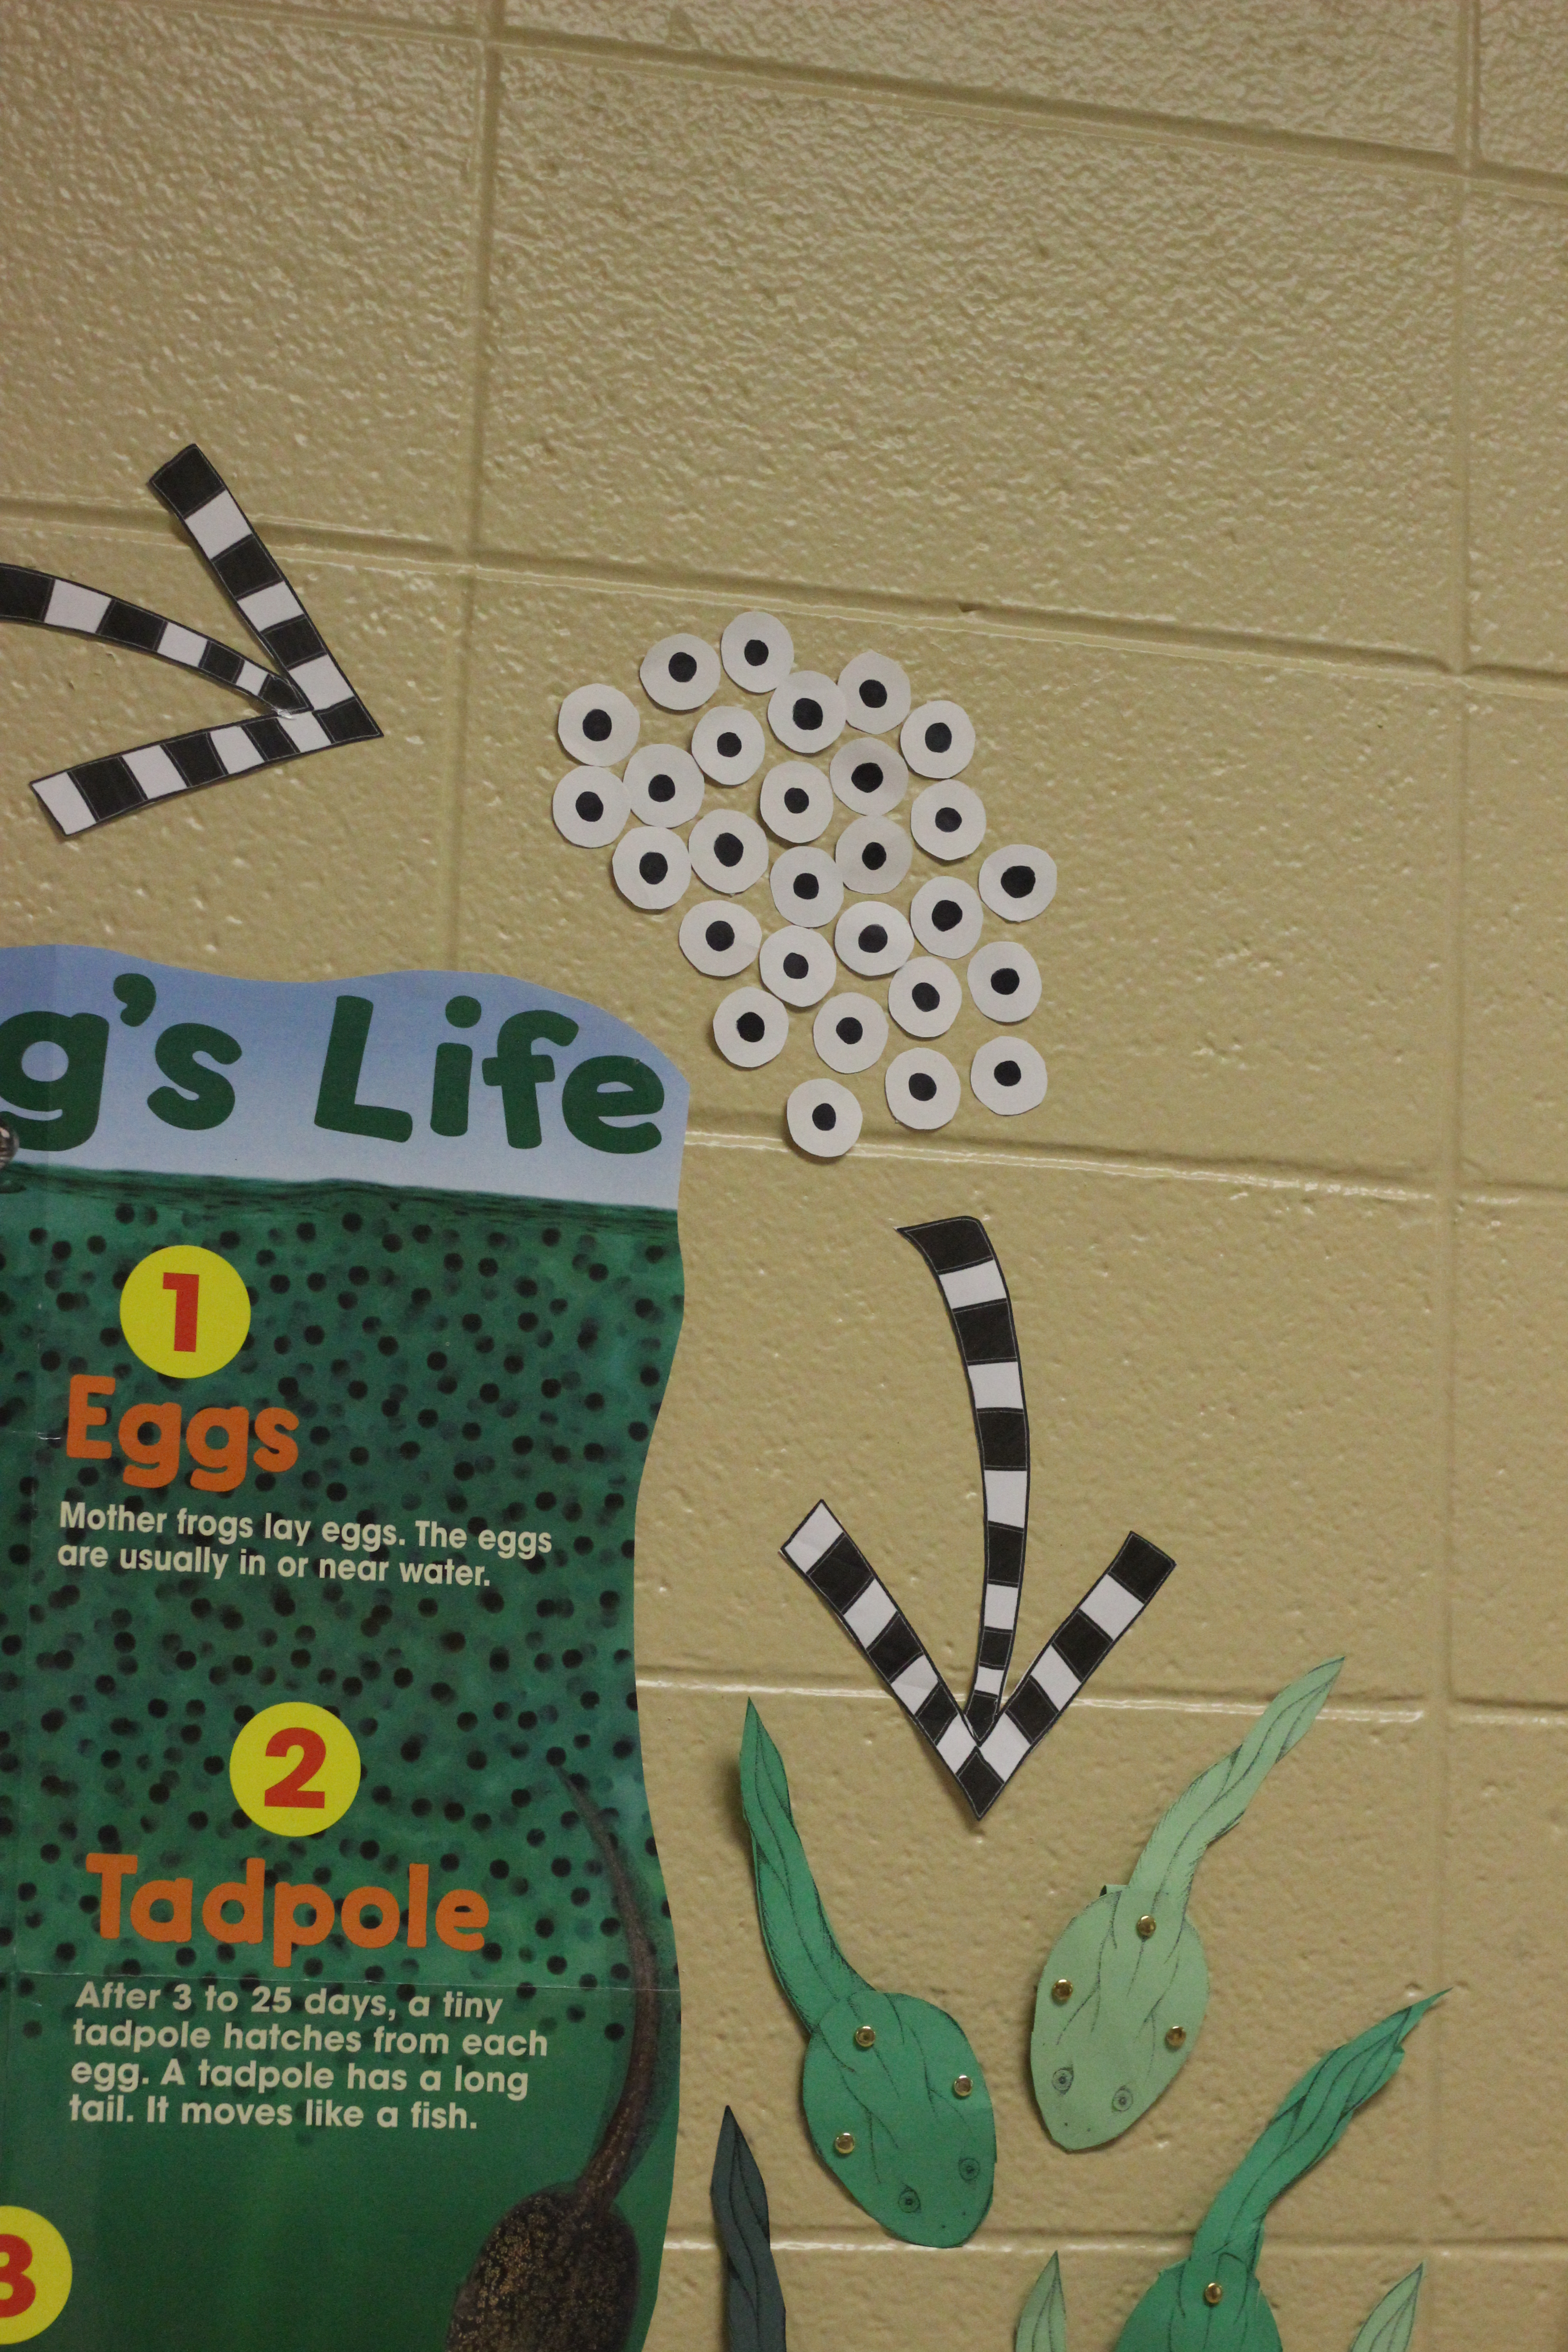 Students learn about the life cycle of tadpoles